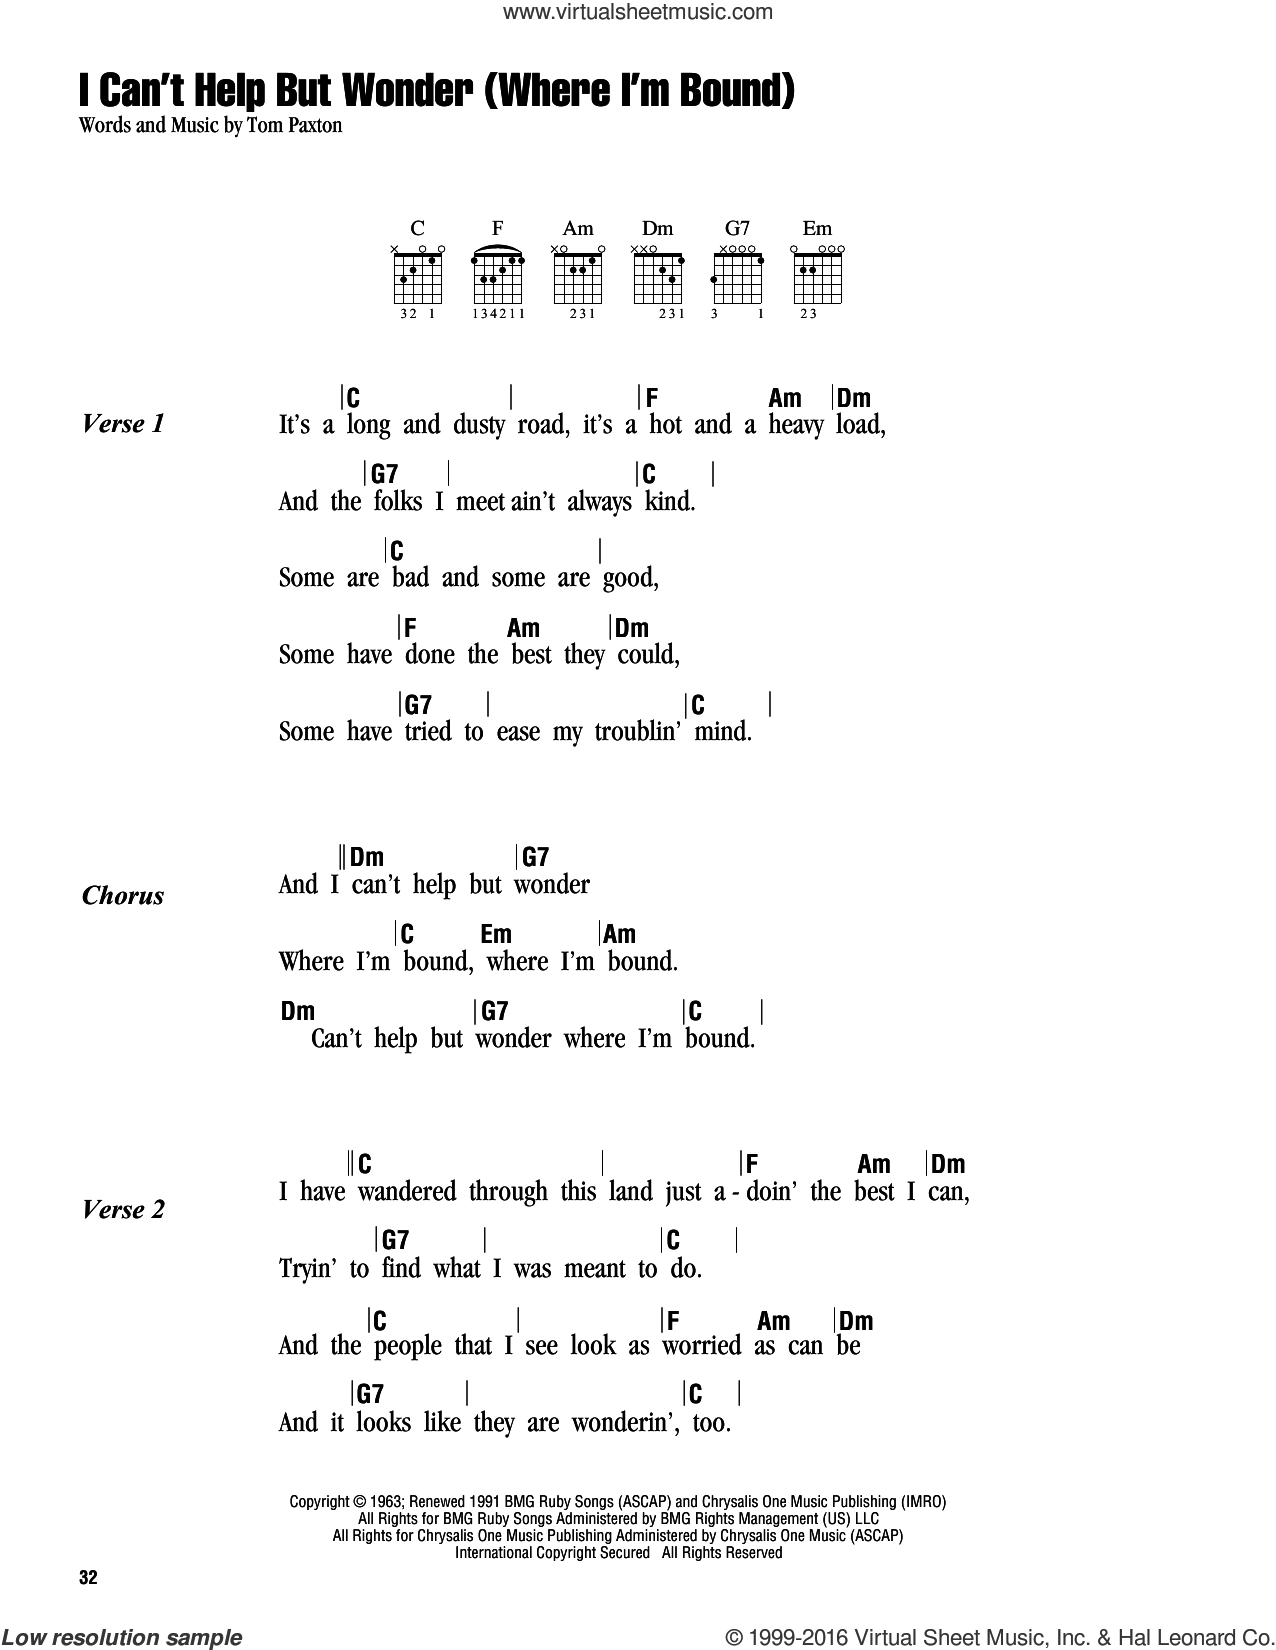 I Can't Help But Wonder (Where I'm Bound) sheet music for guitar (chords) by Tom Paxton, intermediate skill level